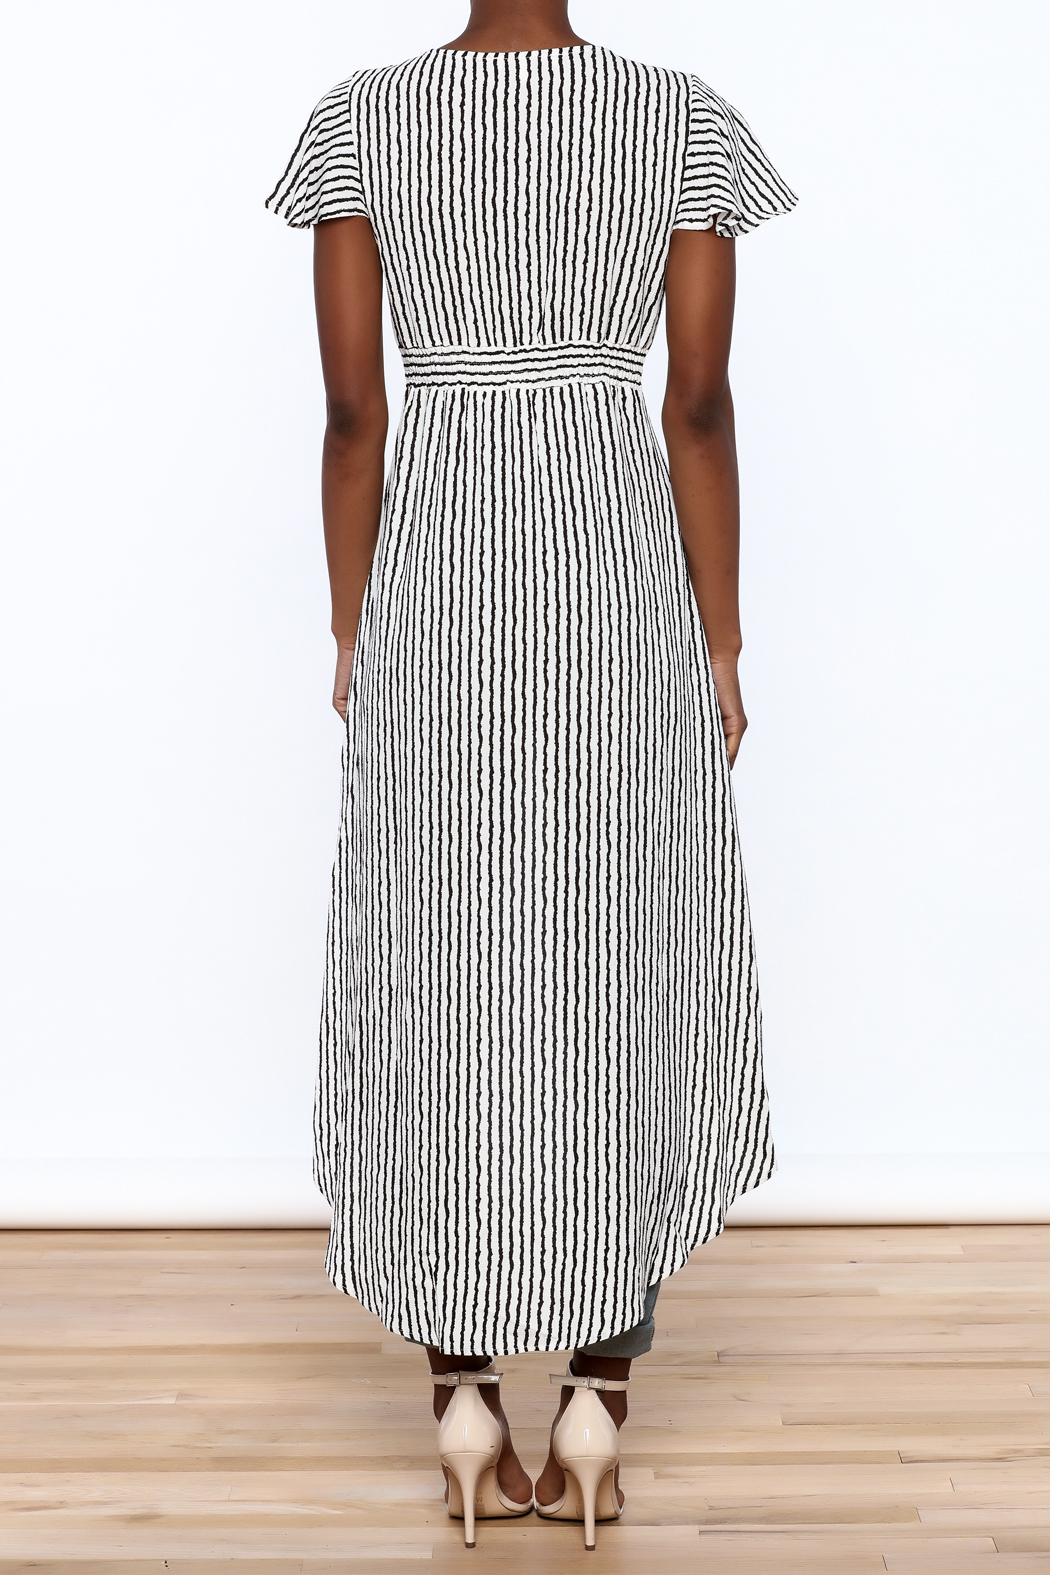 Jealous Tomato Stripe Print Maxi Top - Back Cropped Image